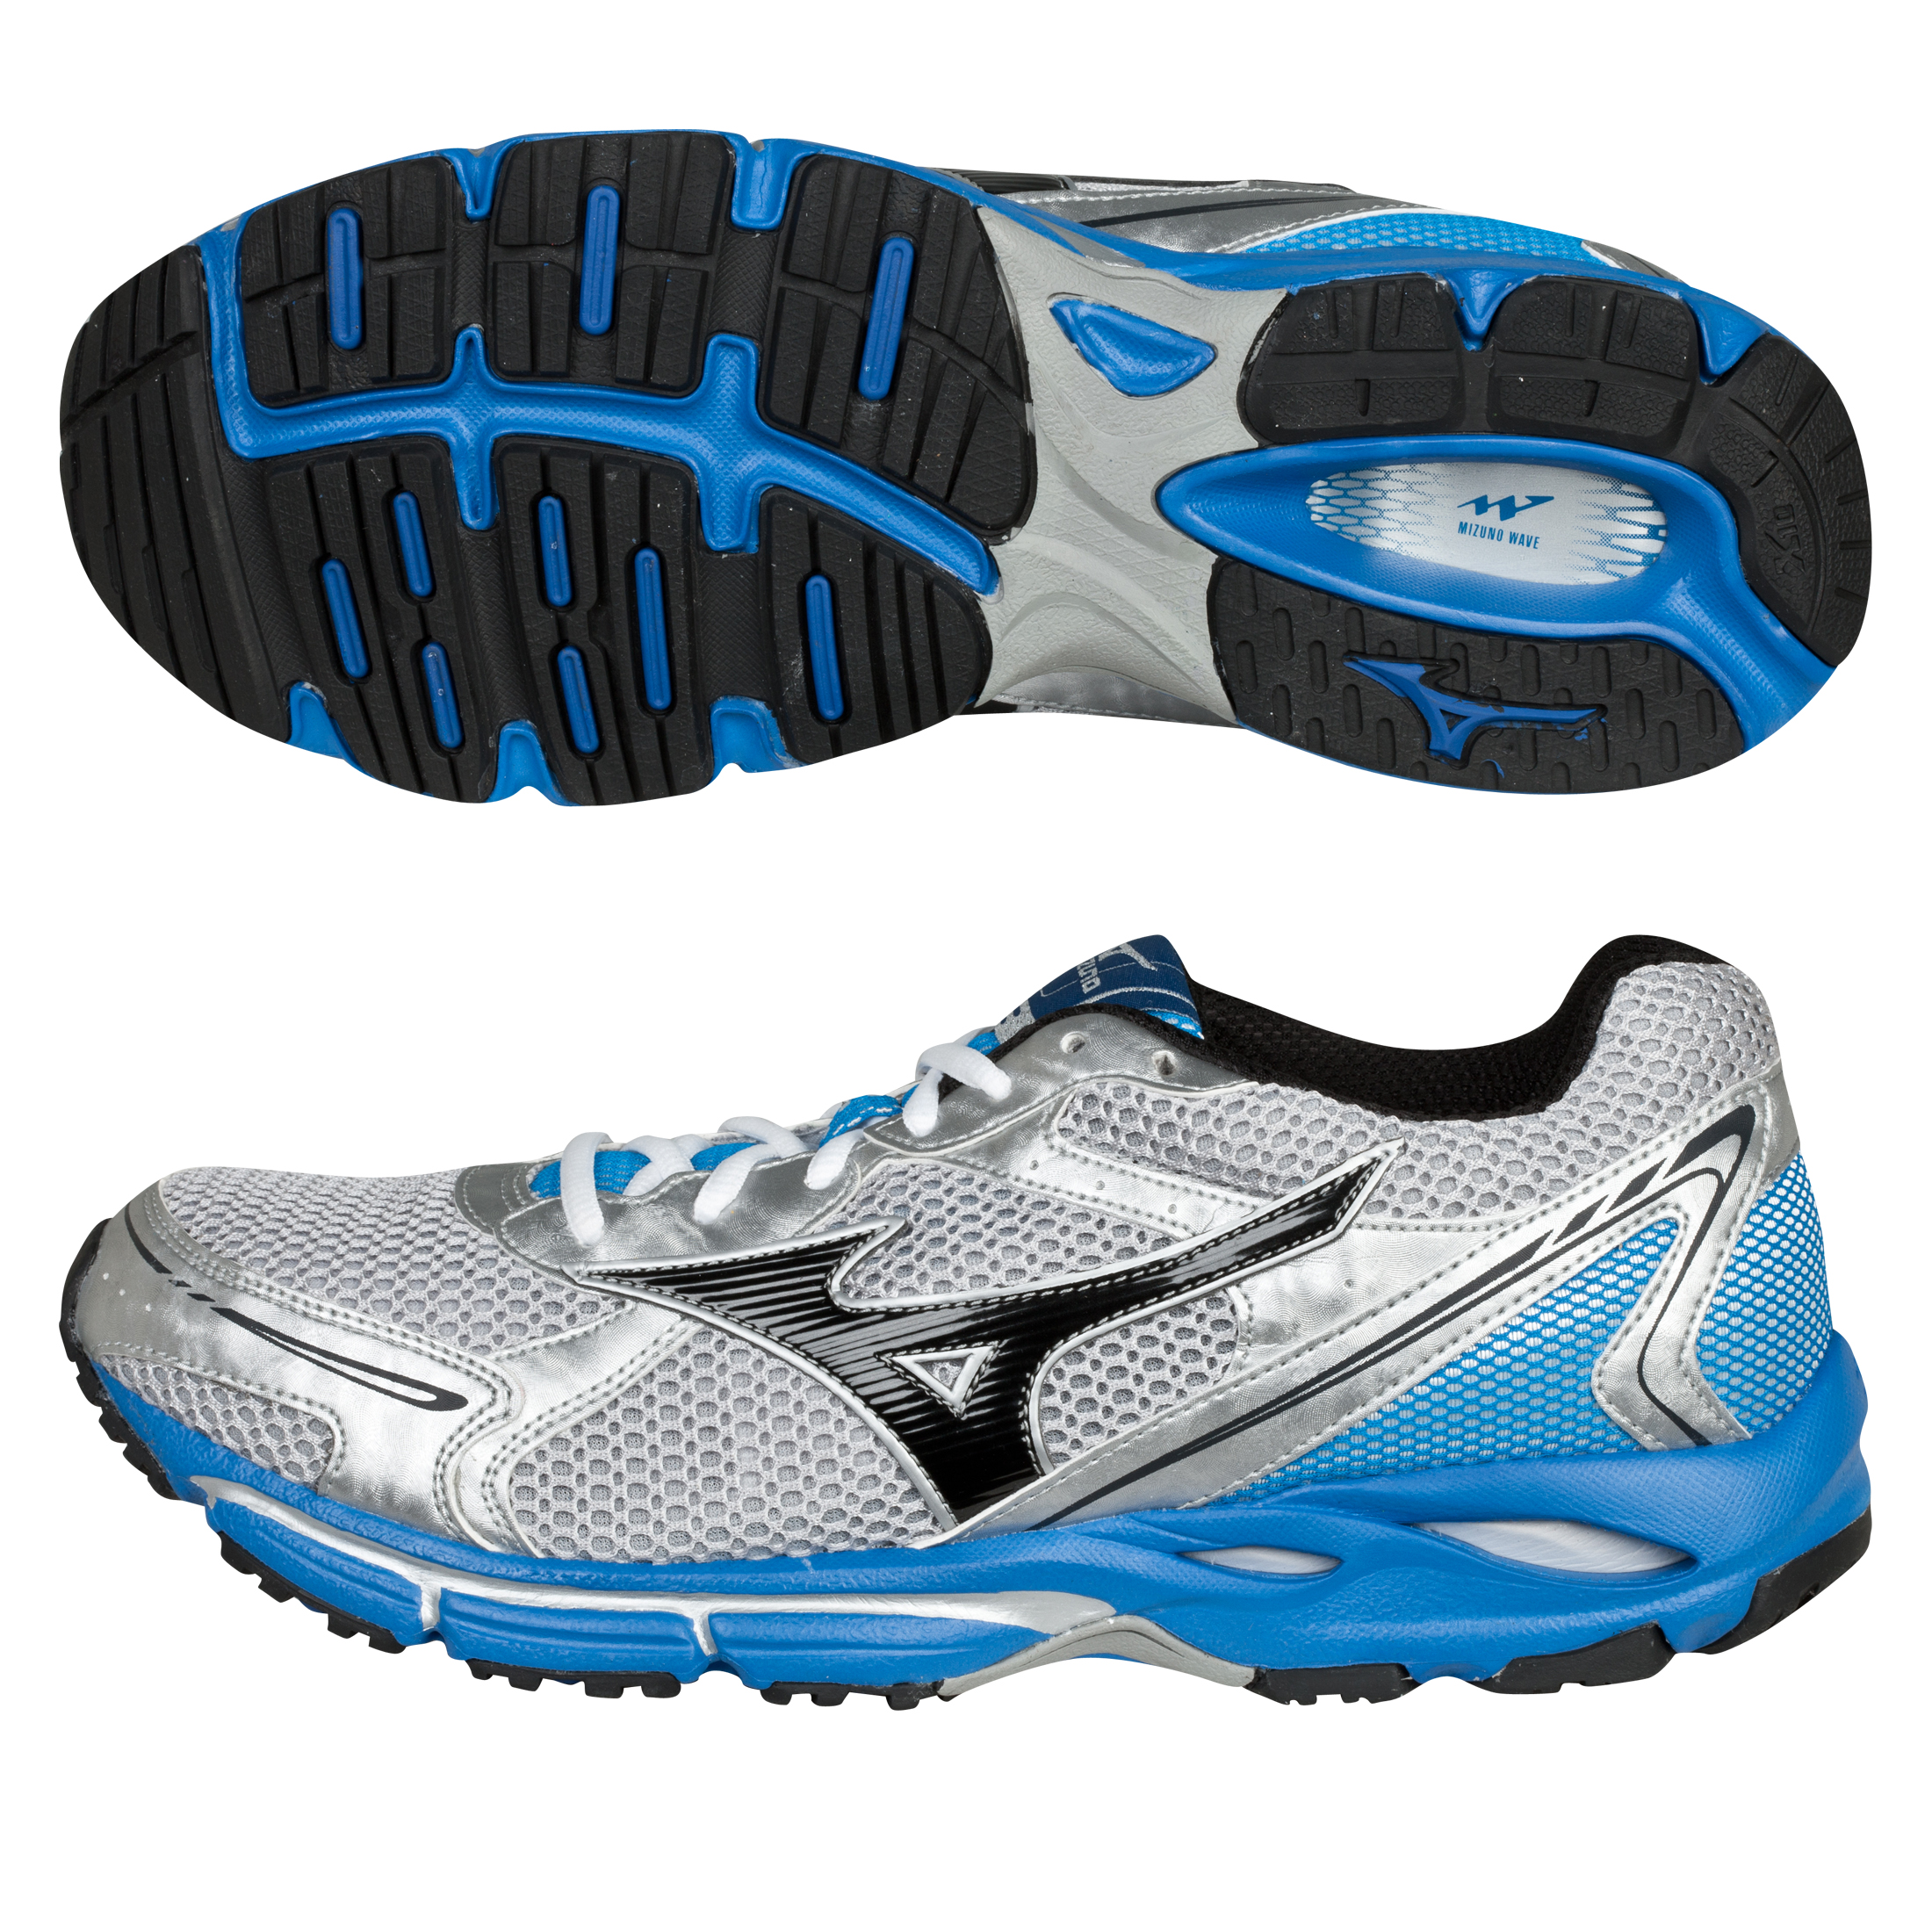 Mizuno Wave Resolute Trainer - Silver/Anthracite/Imperial Blue